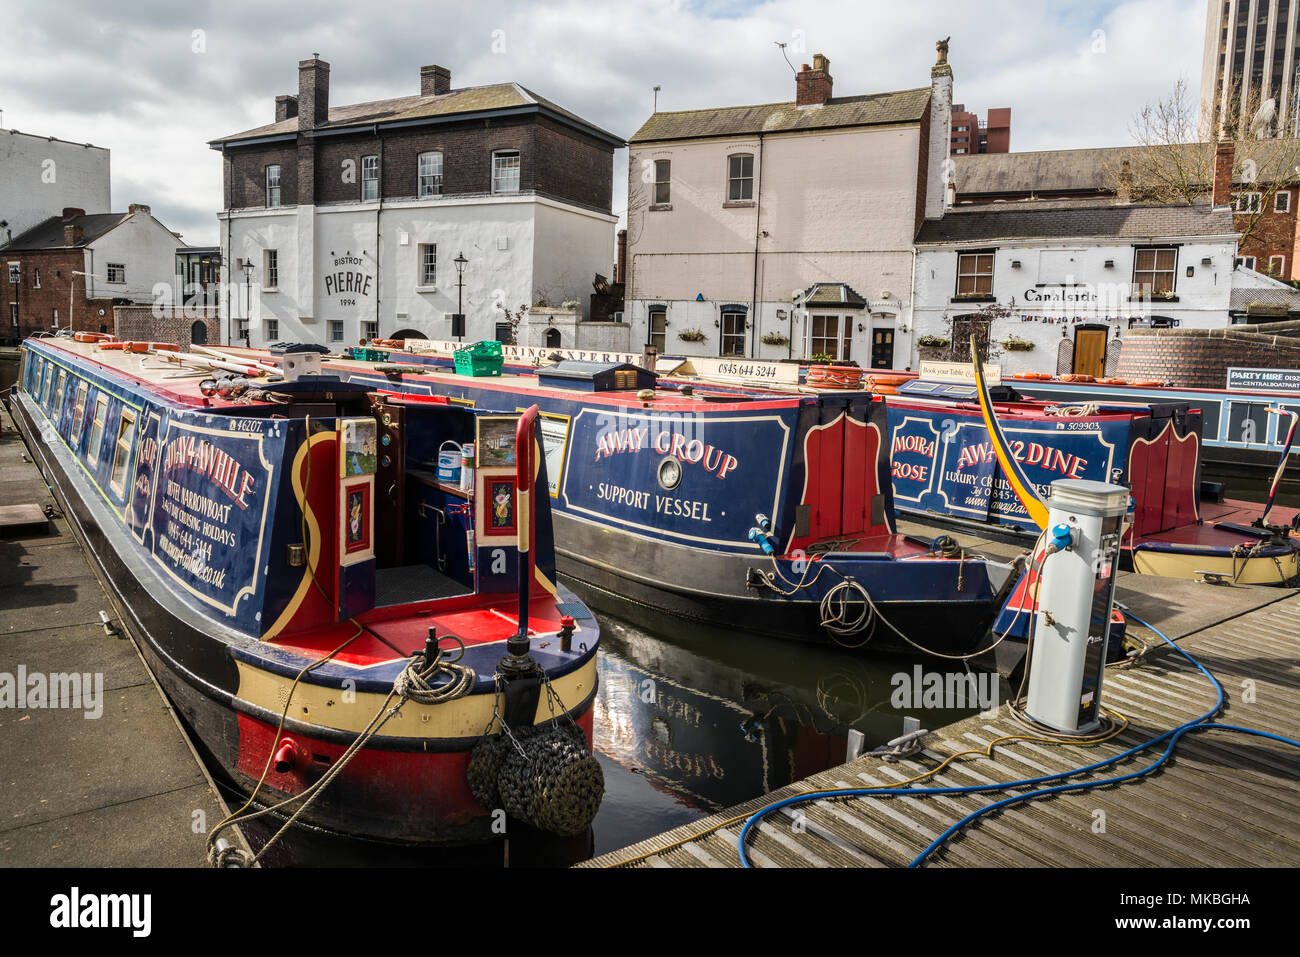 Colourful narrow canal boats on Gas Street Basin - Stock Image